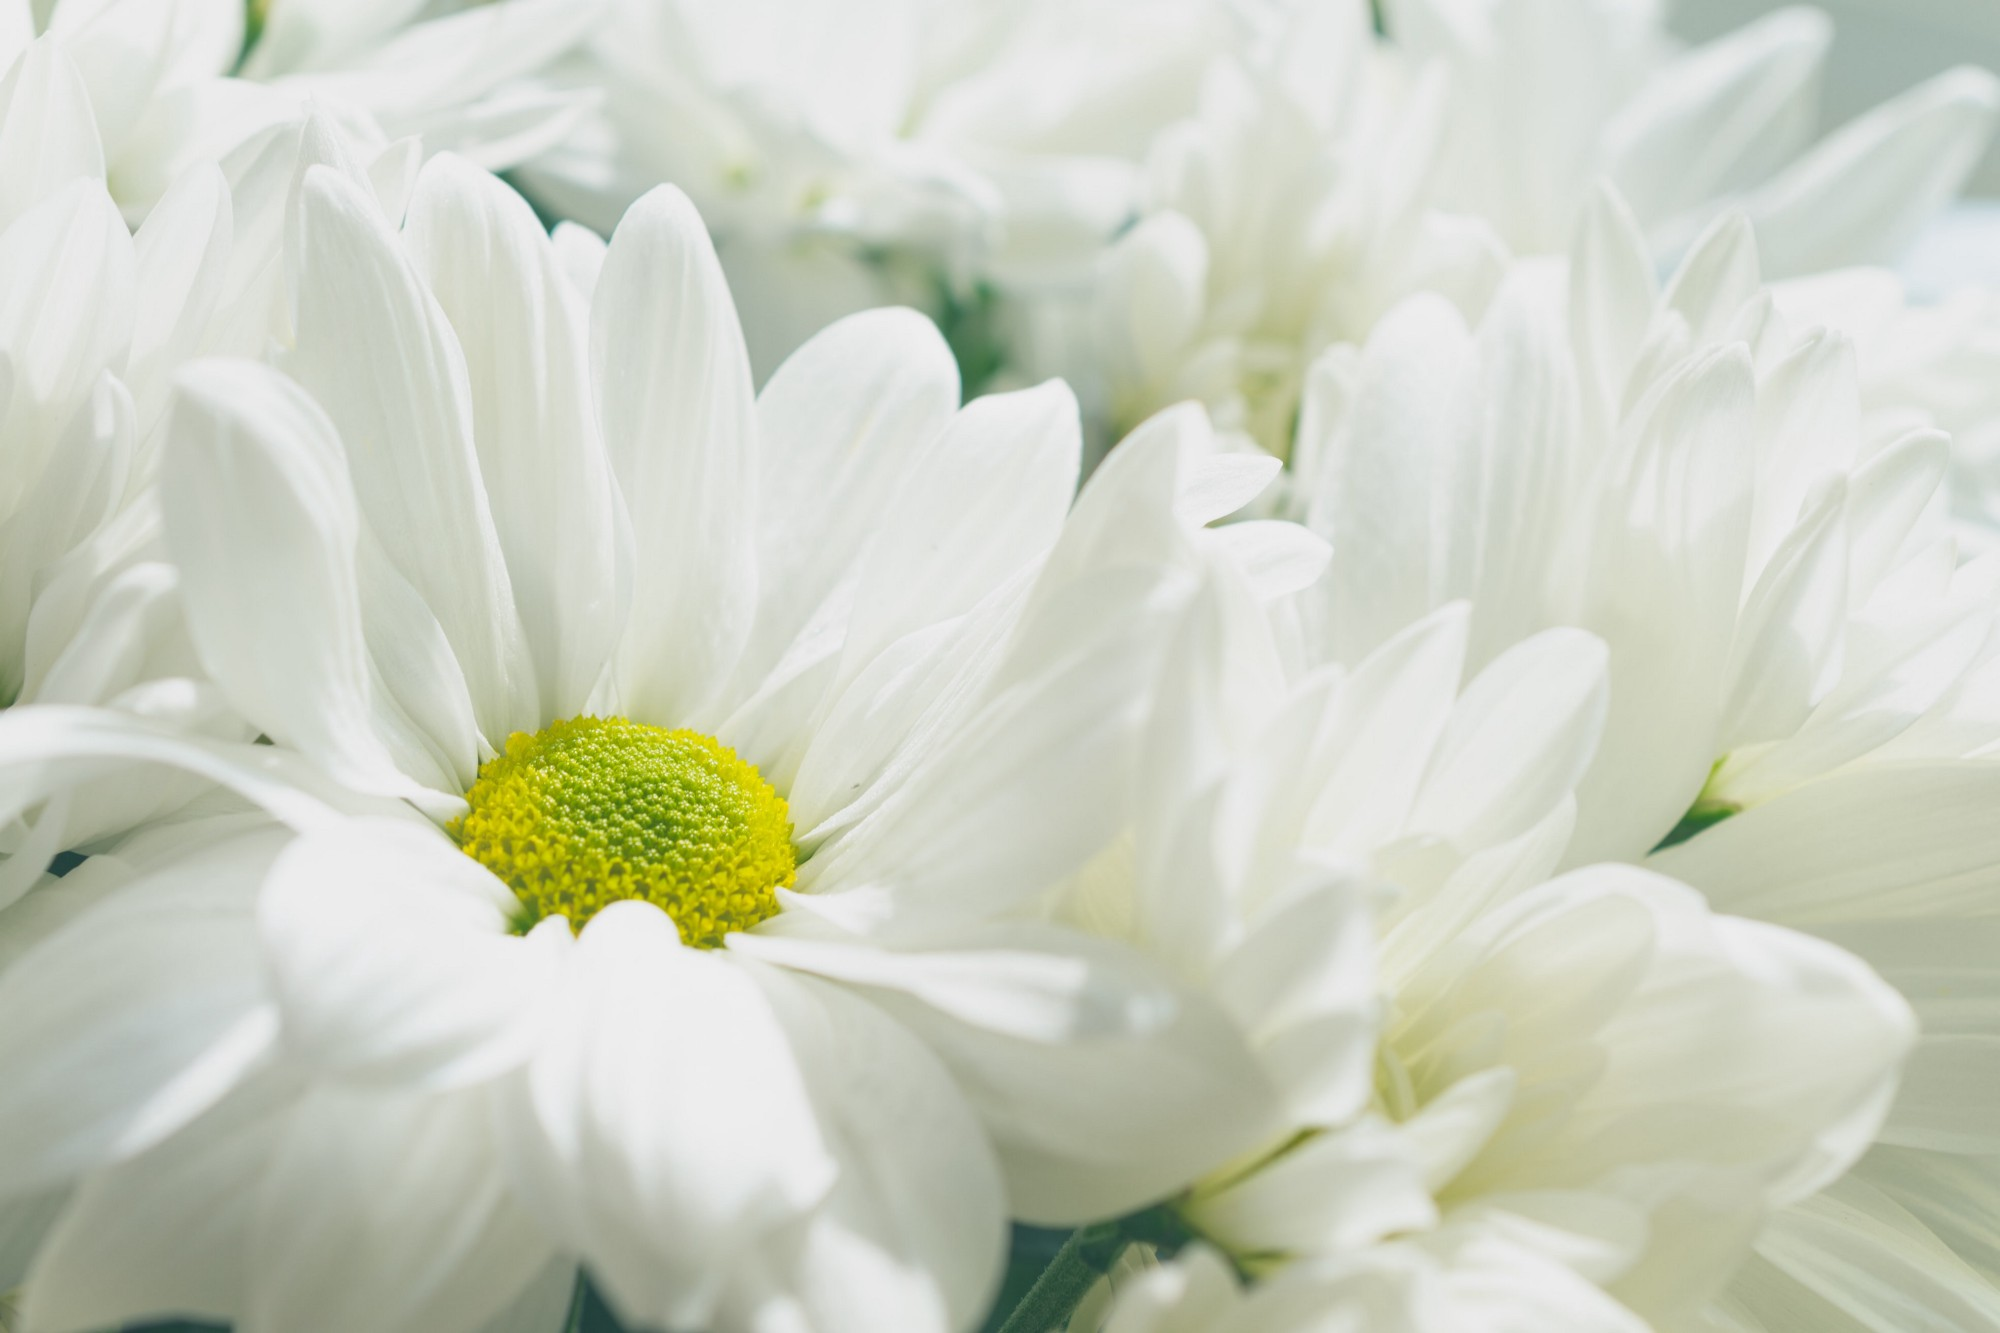 A close-up of white flowers.